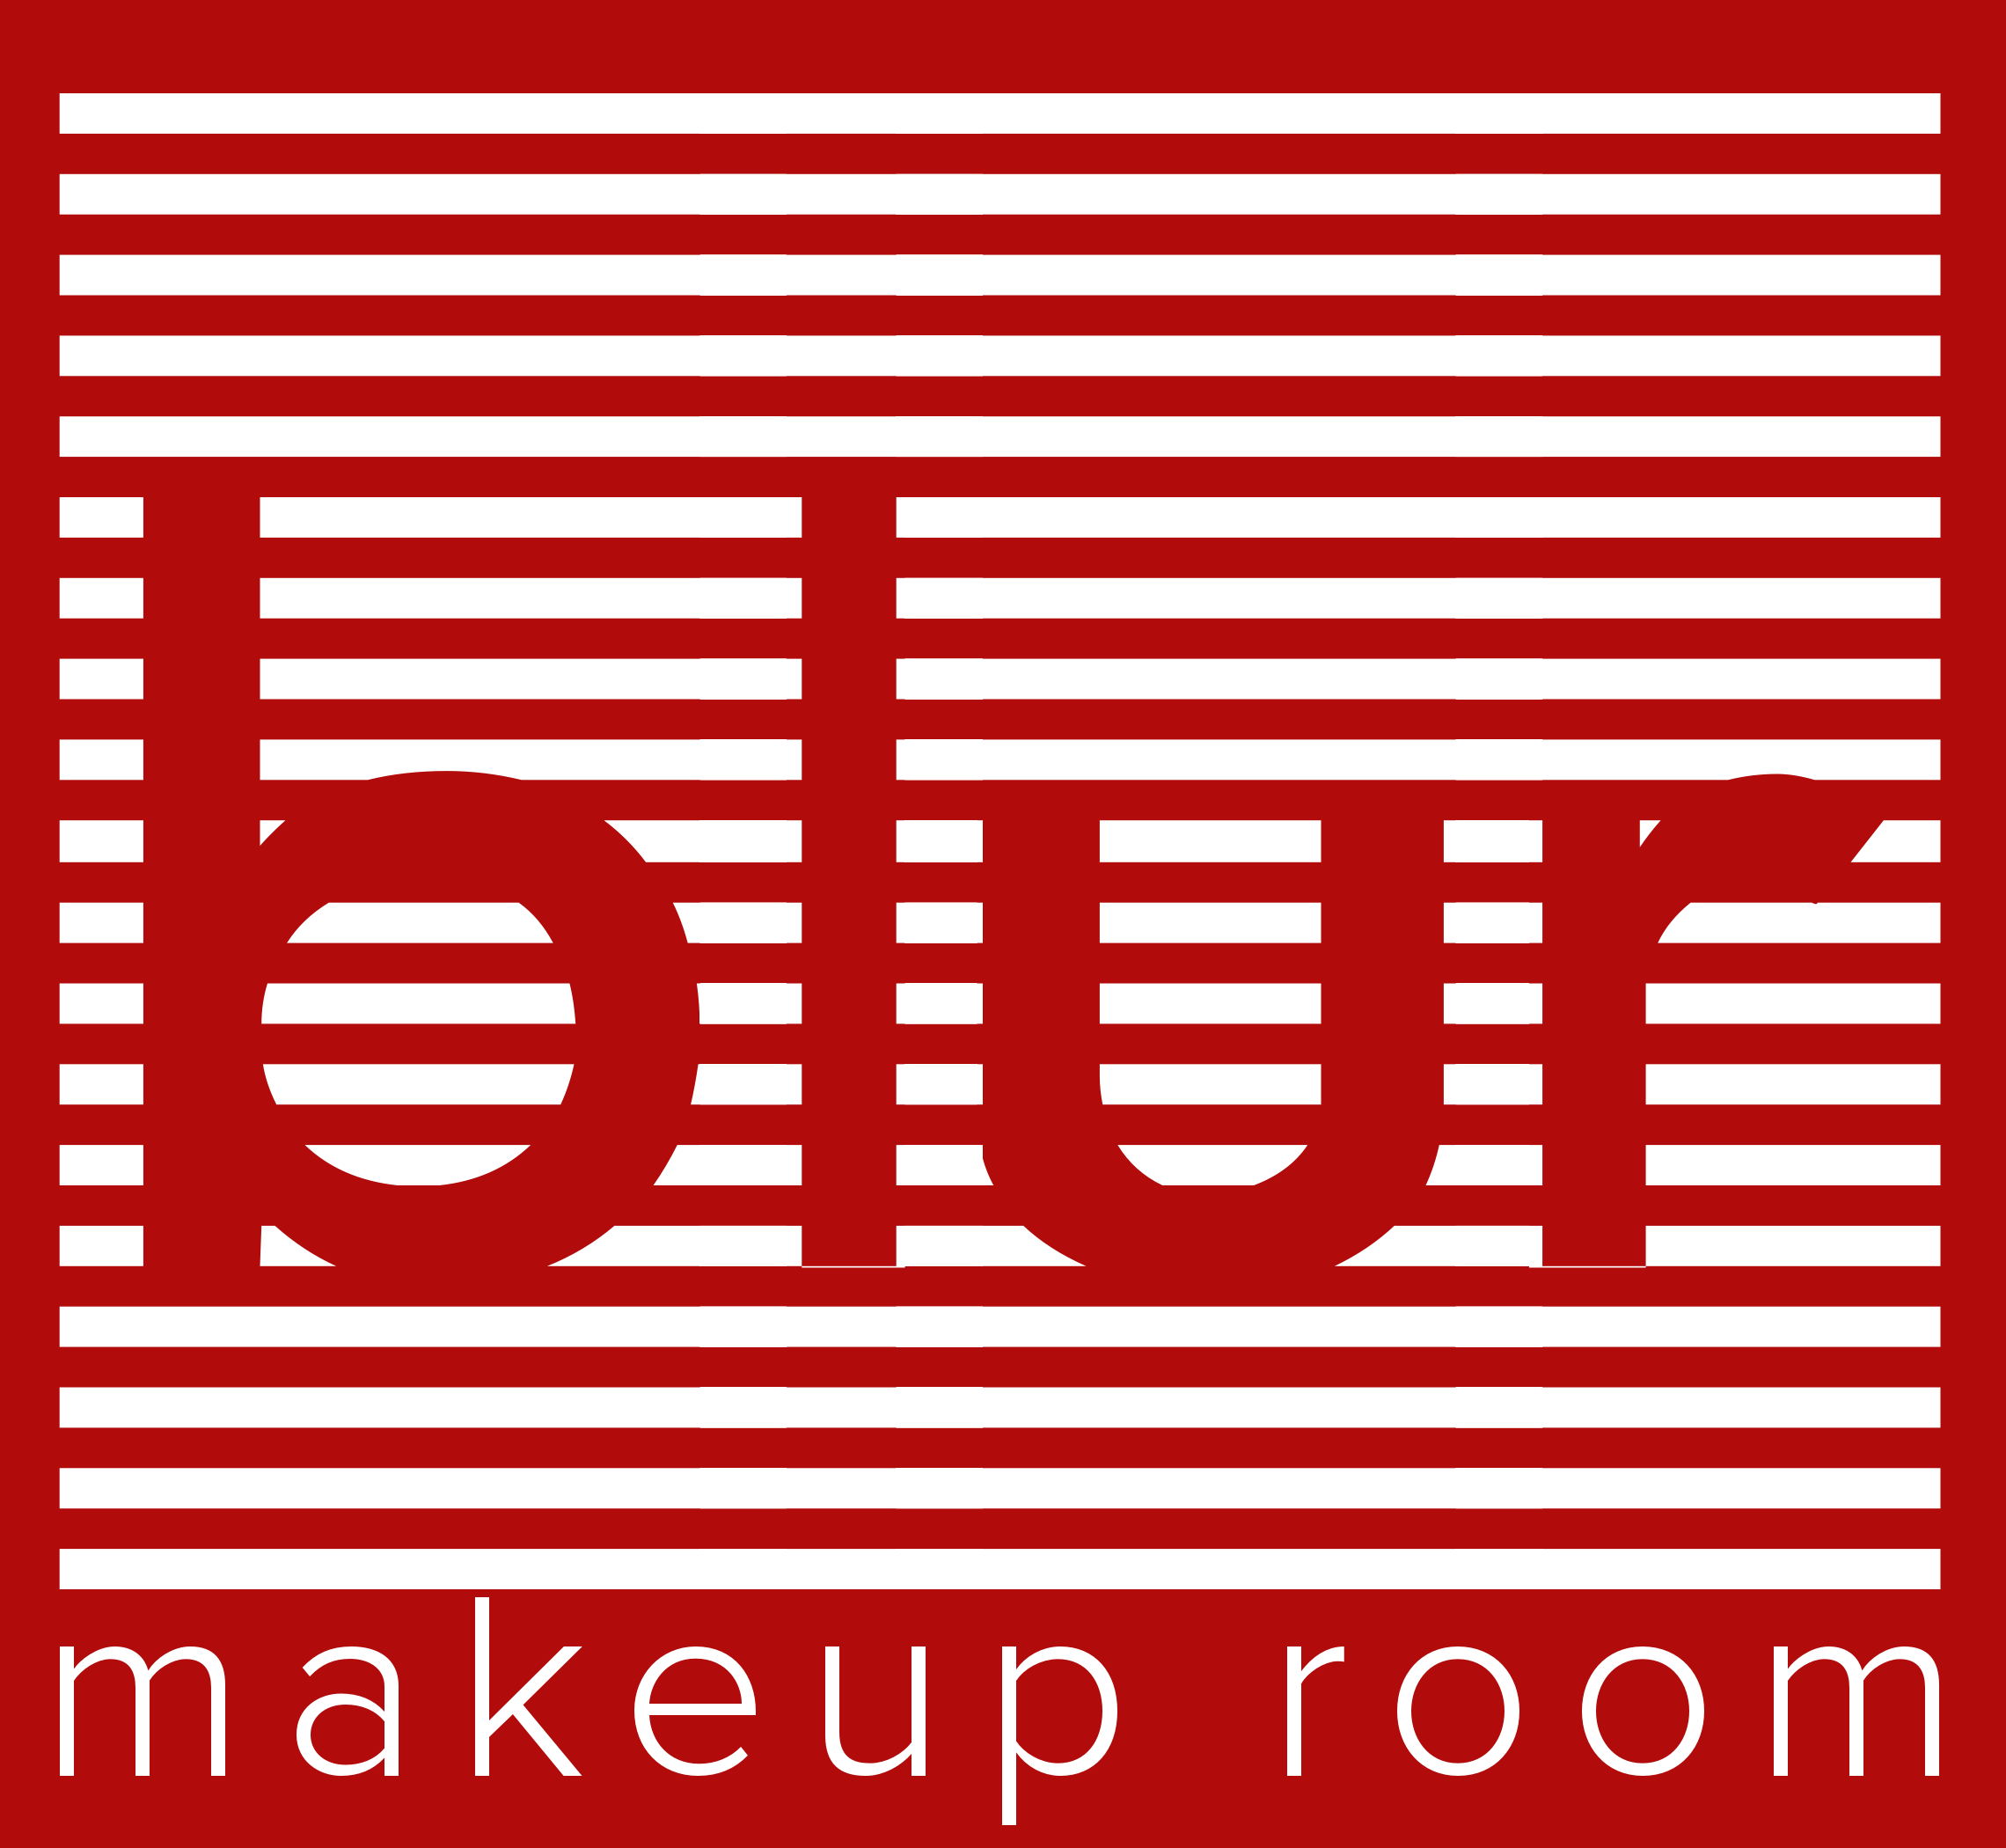 Blur Makeup Room logo with link to website